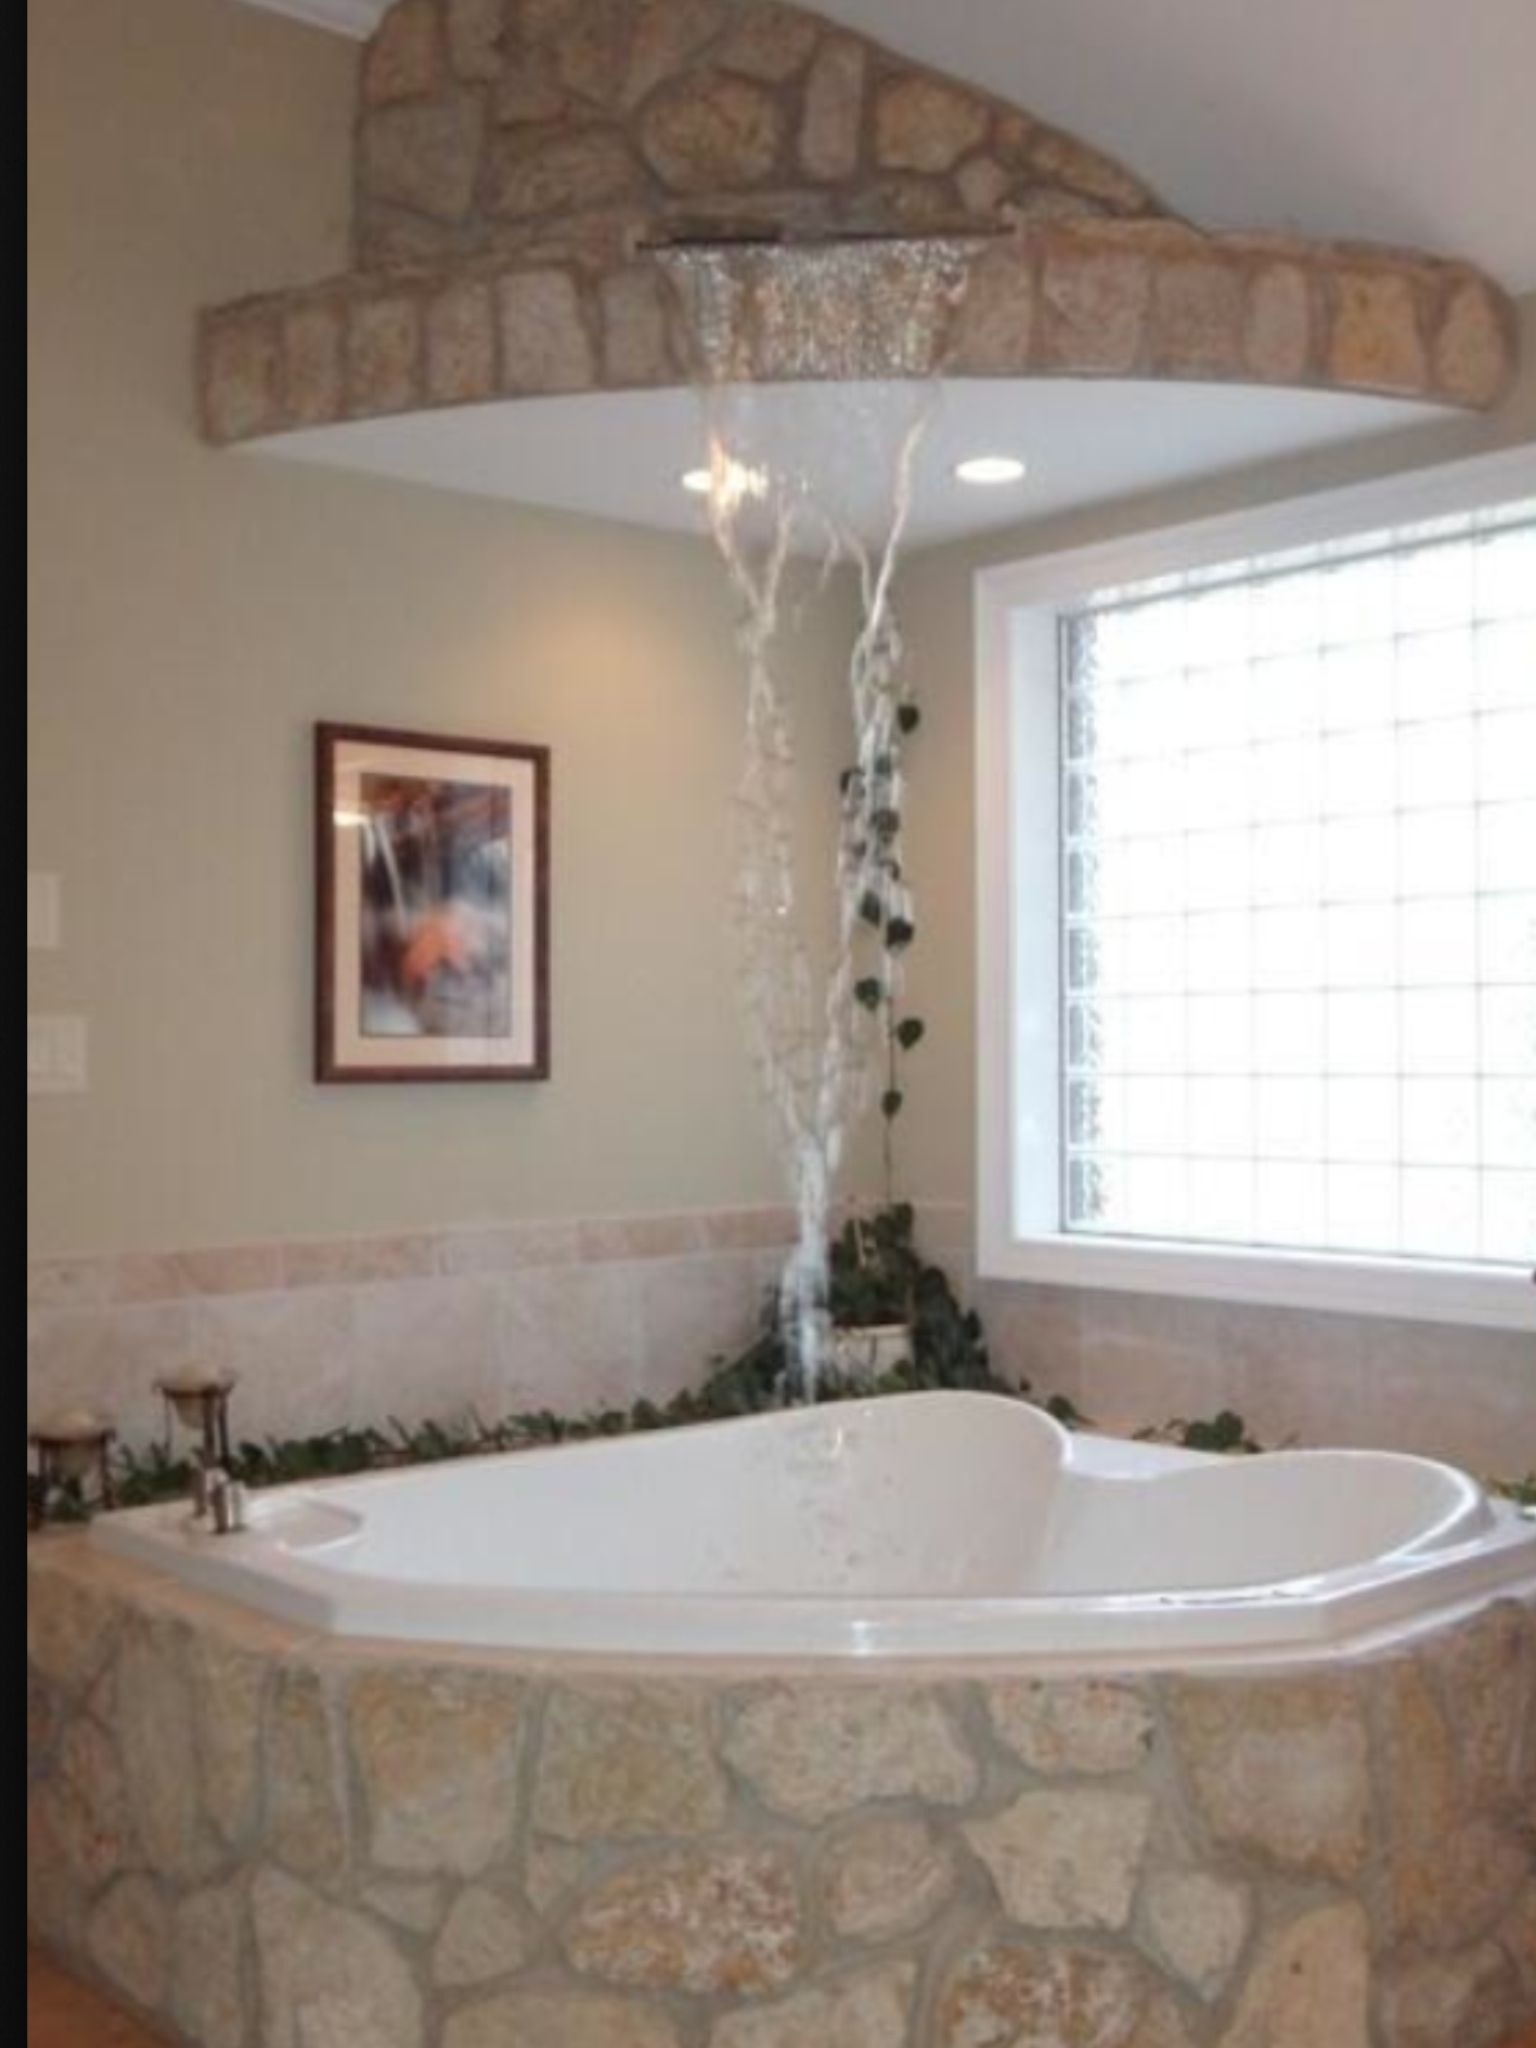 Check out this tub! | home | Pinterest | Tubs, Check and House